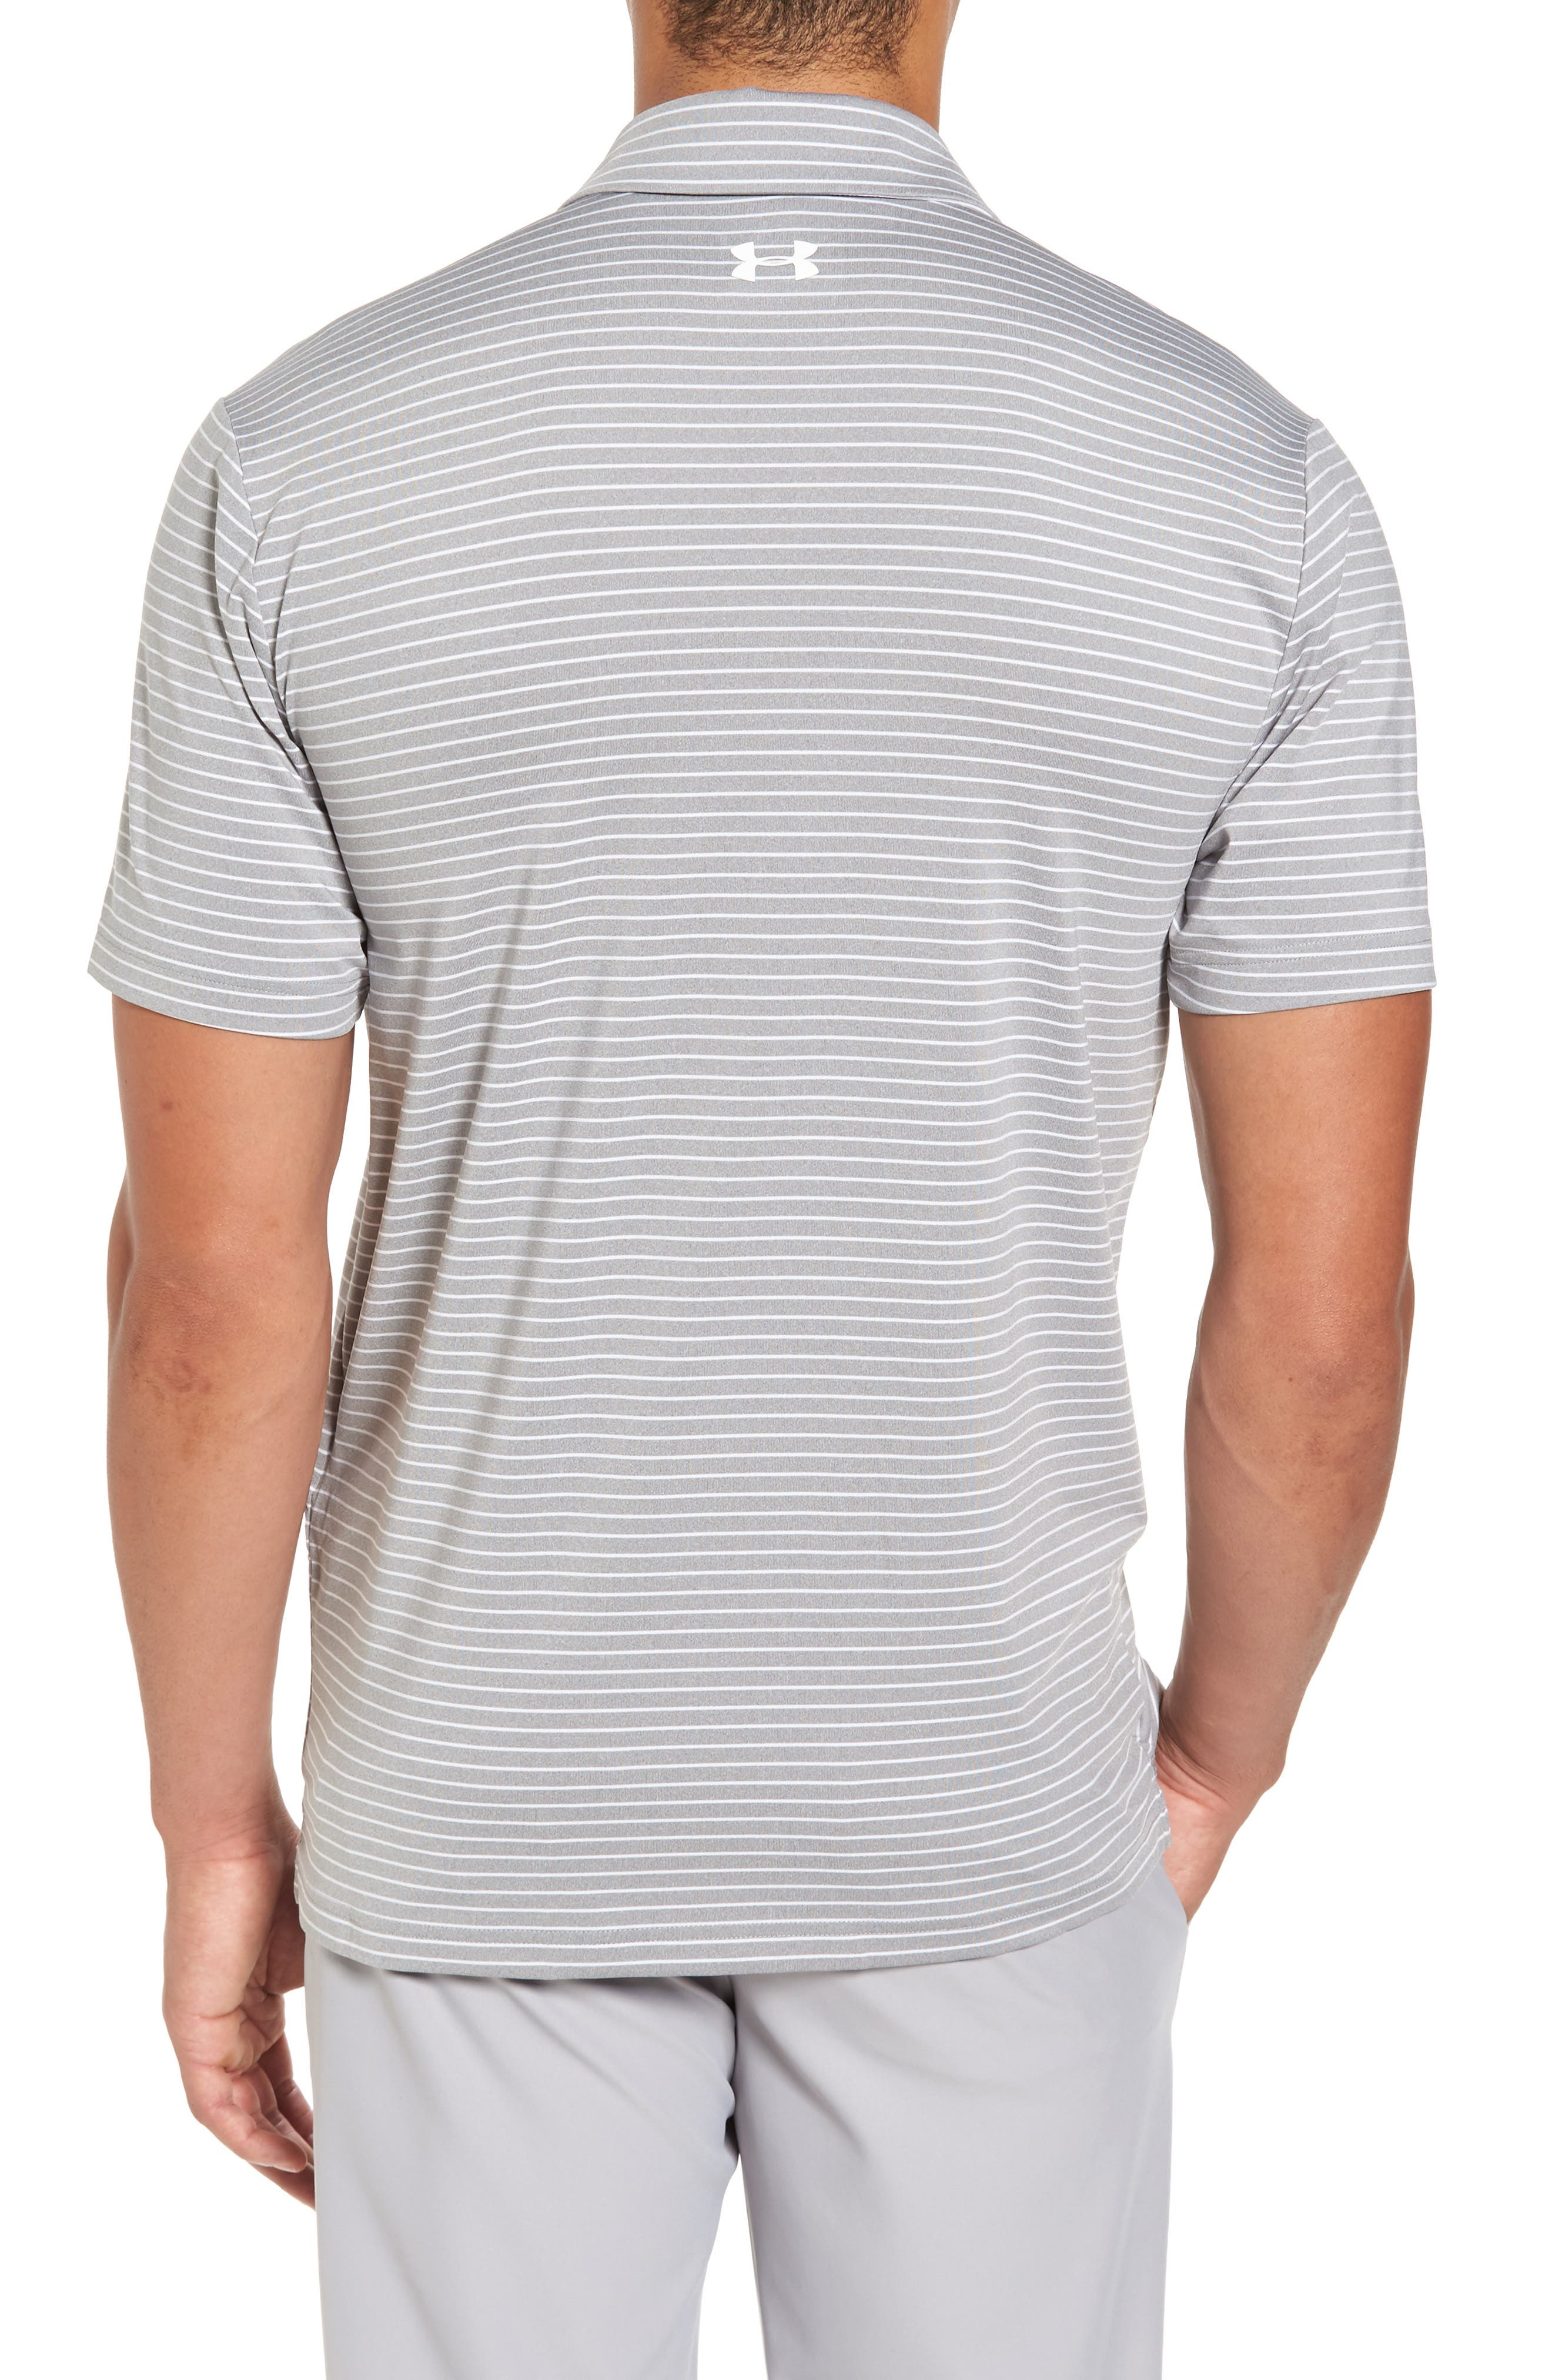 'Playoff' Loose Fit Short Sleeve Polo,                             Alternate thumbnail 2, color,                             TRUE GREY HEATHER/ WHT STRIPE